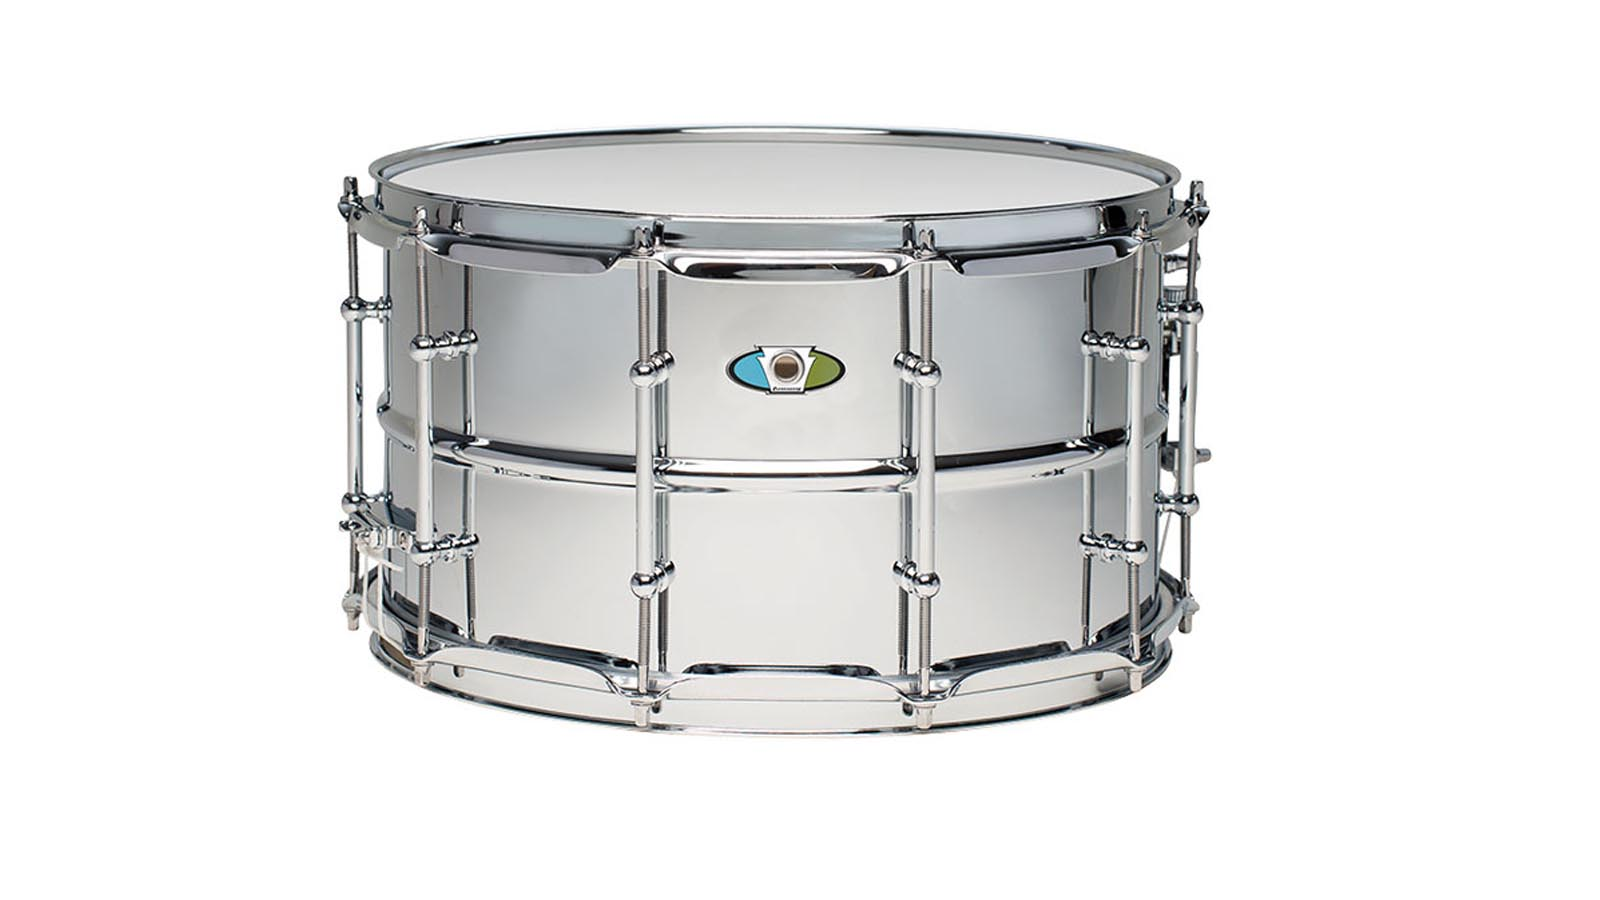 Ludwig 14x8 Supralite Steel Snare